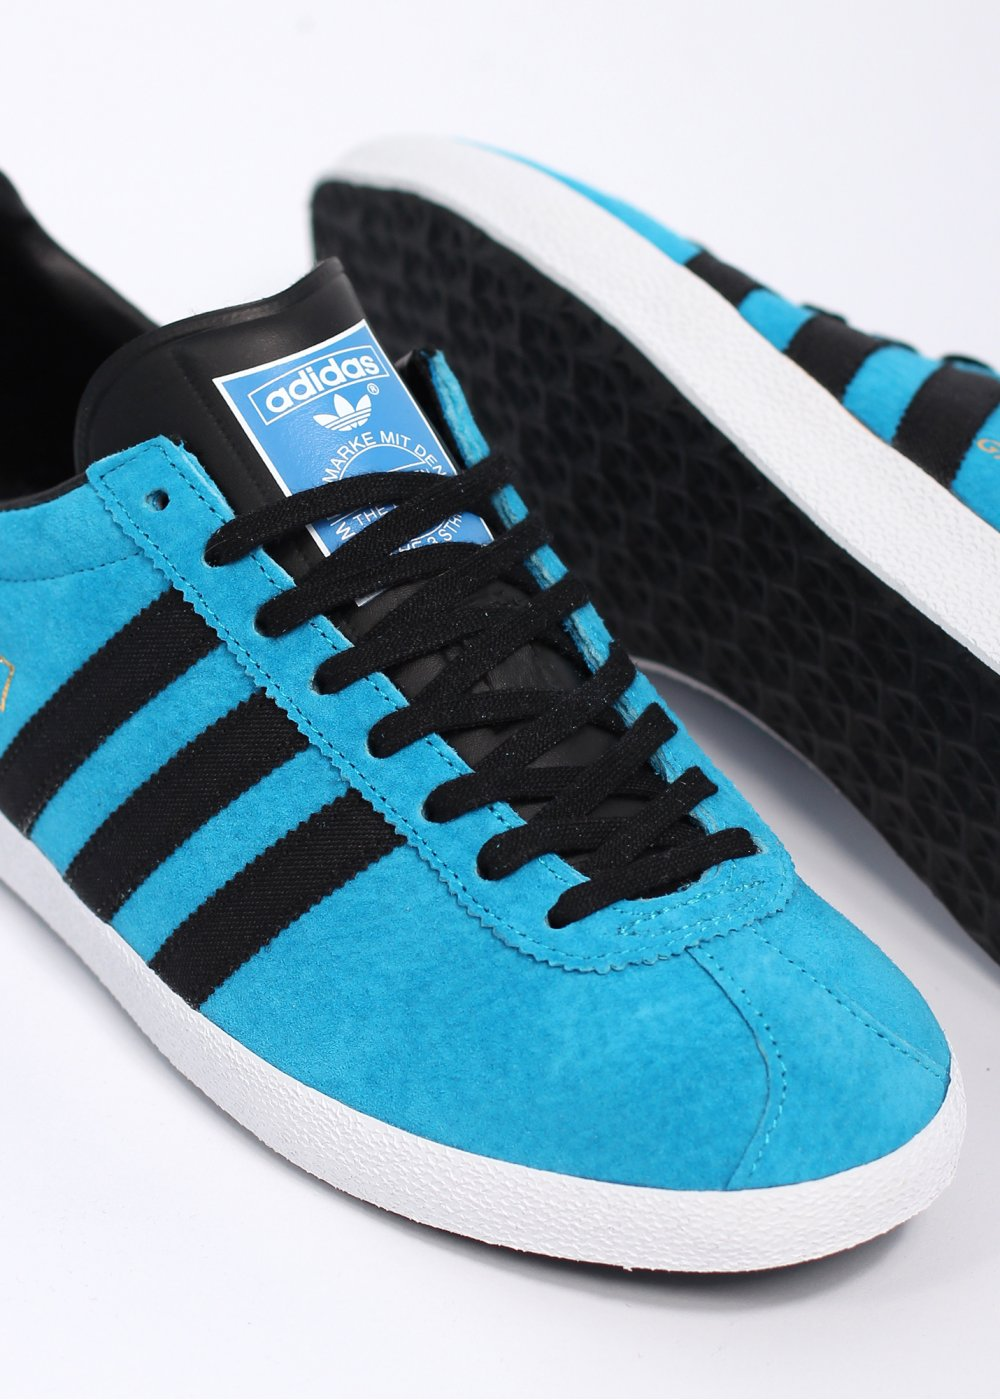 877feeaa5ff827 Buy blue adidas gazelle og   OFF68% Discounted